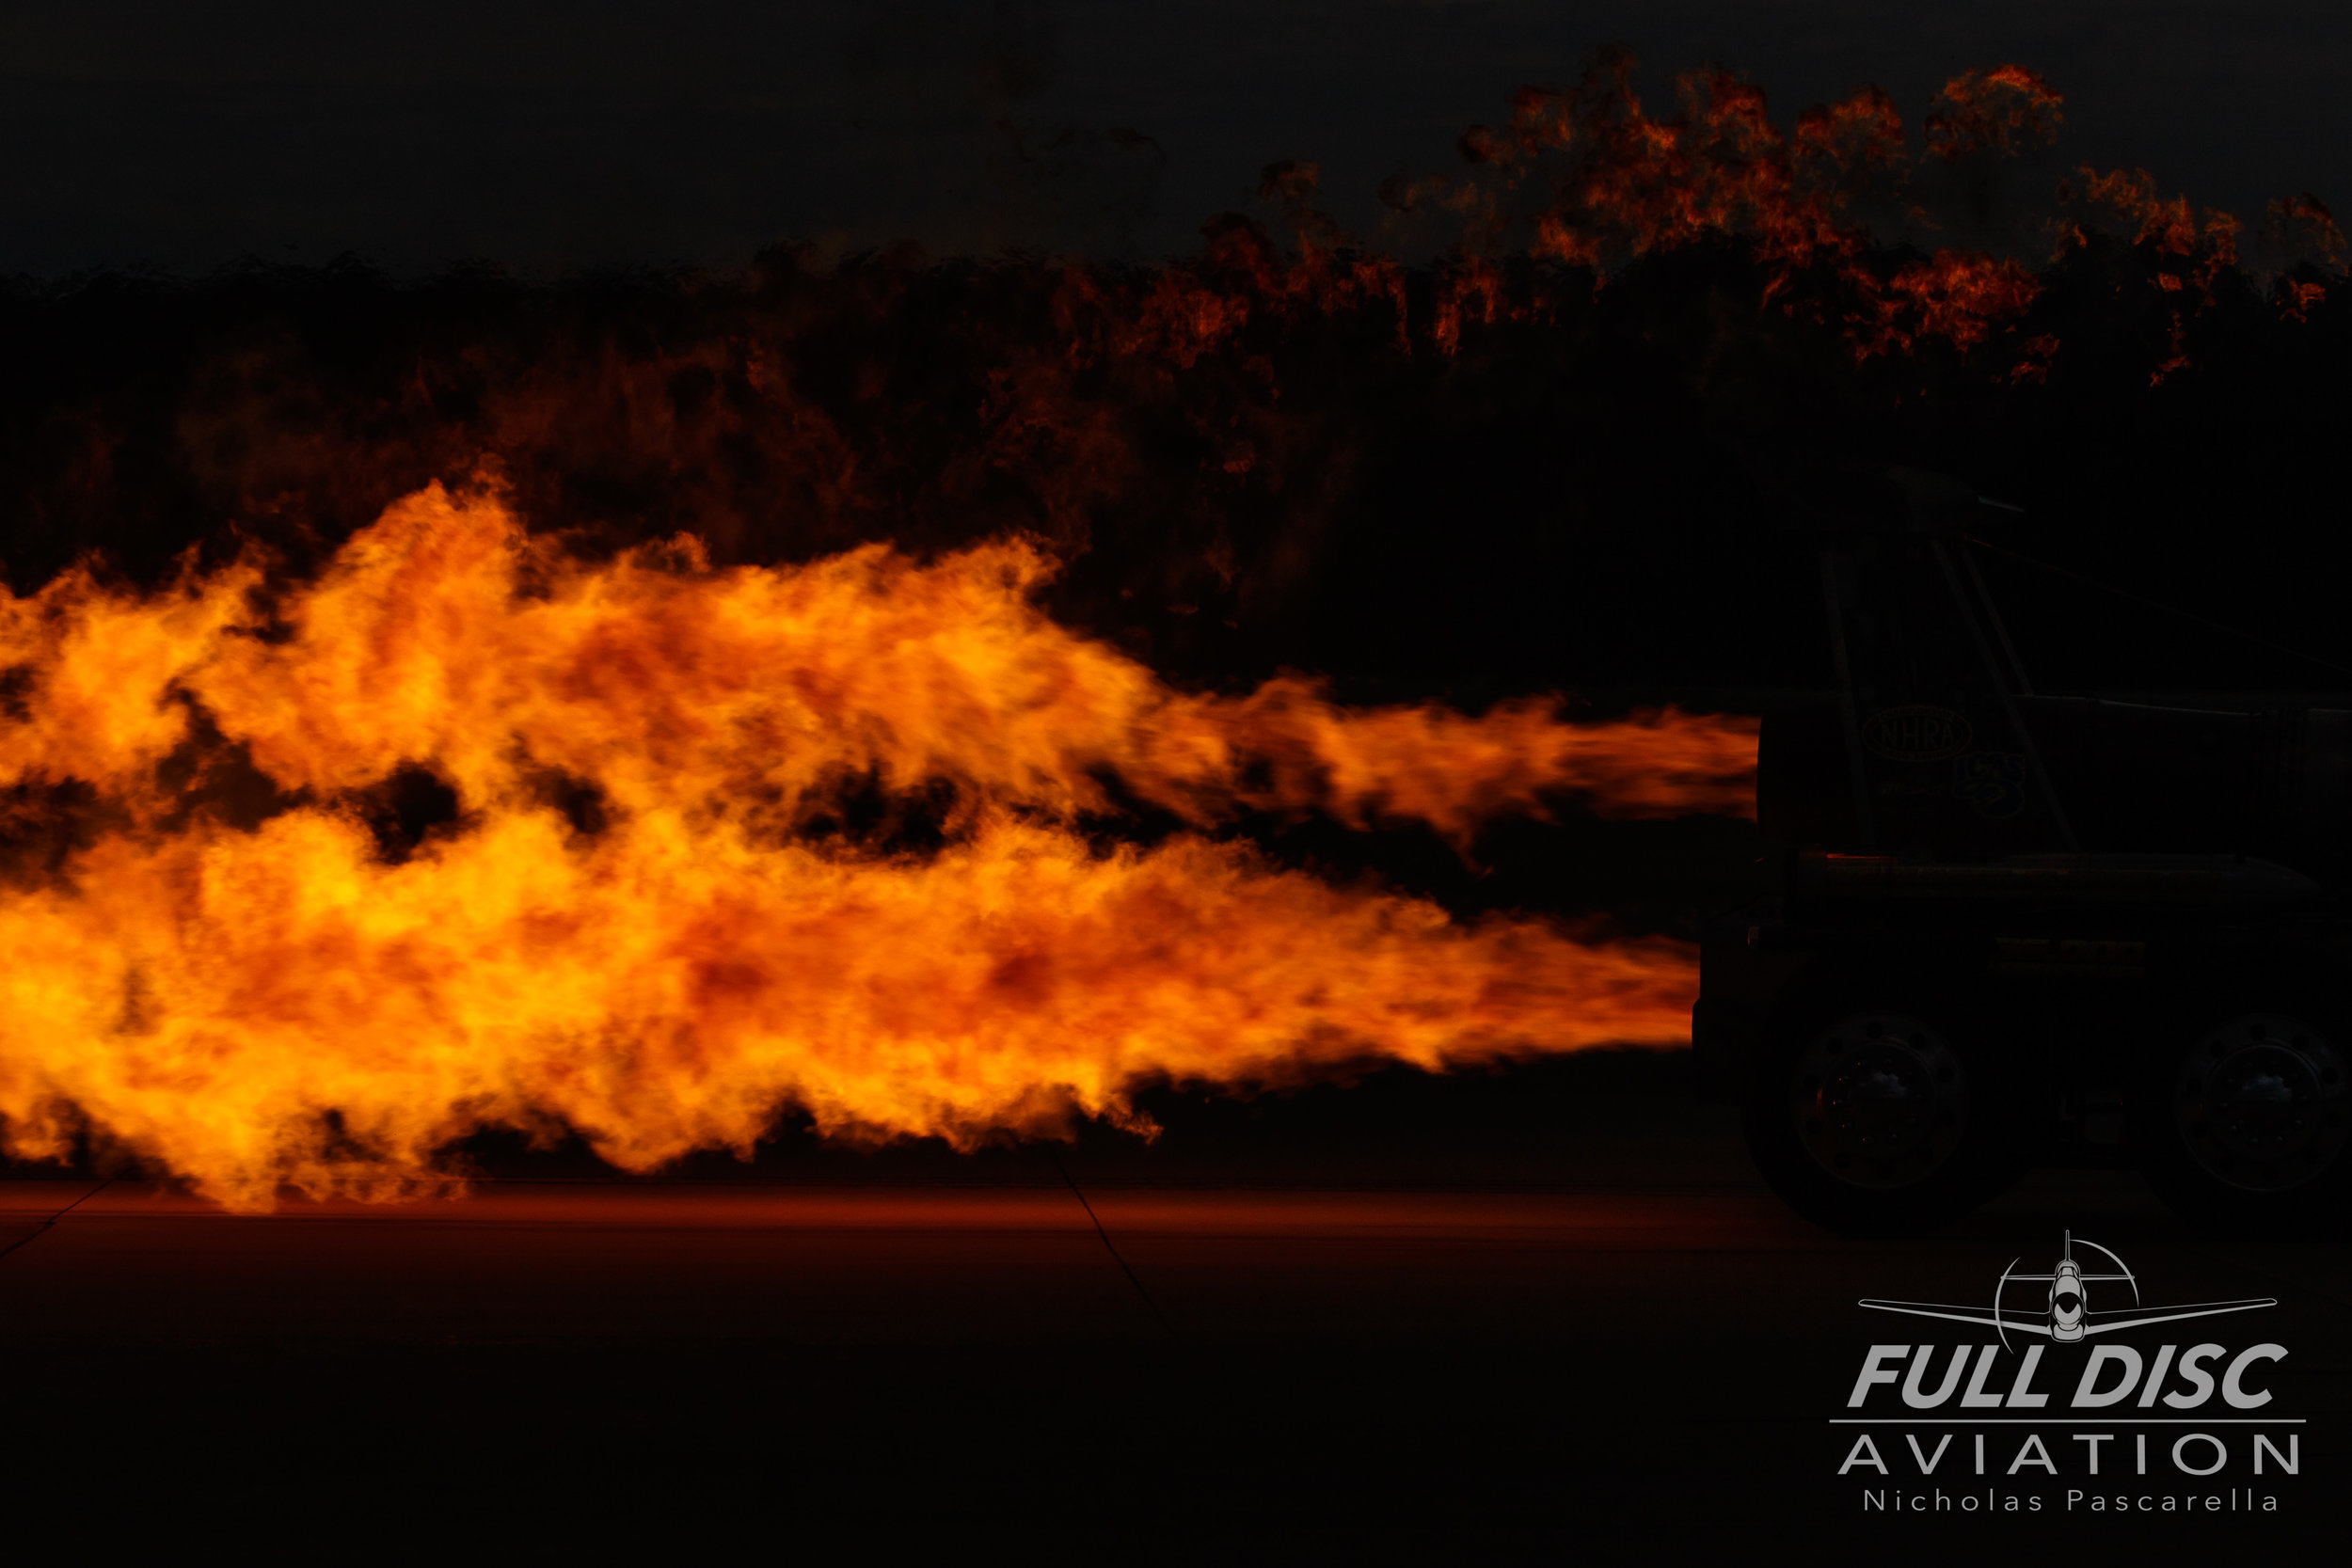 flame_shockwave_jettruck_nicholaspascarella_fulldiscavation_aviation_airshow_wingsoverwayne.jpg